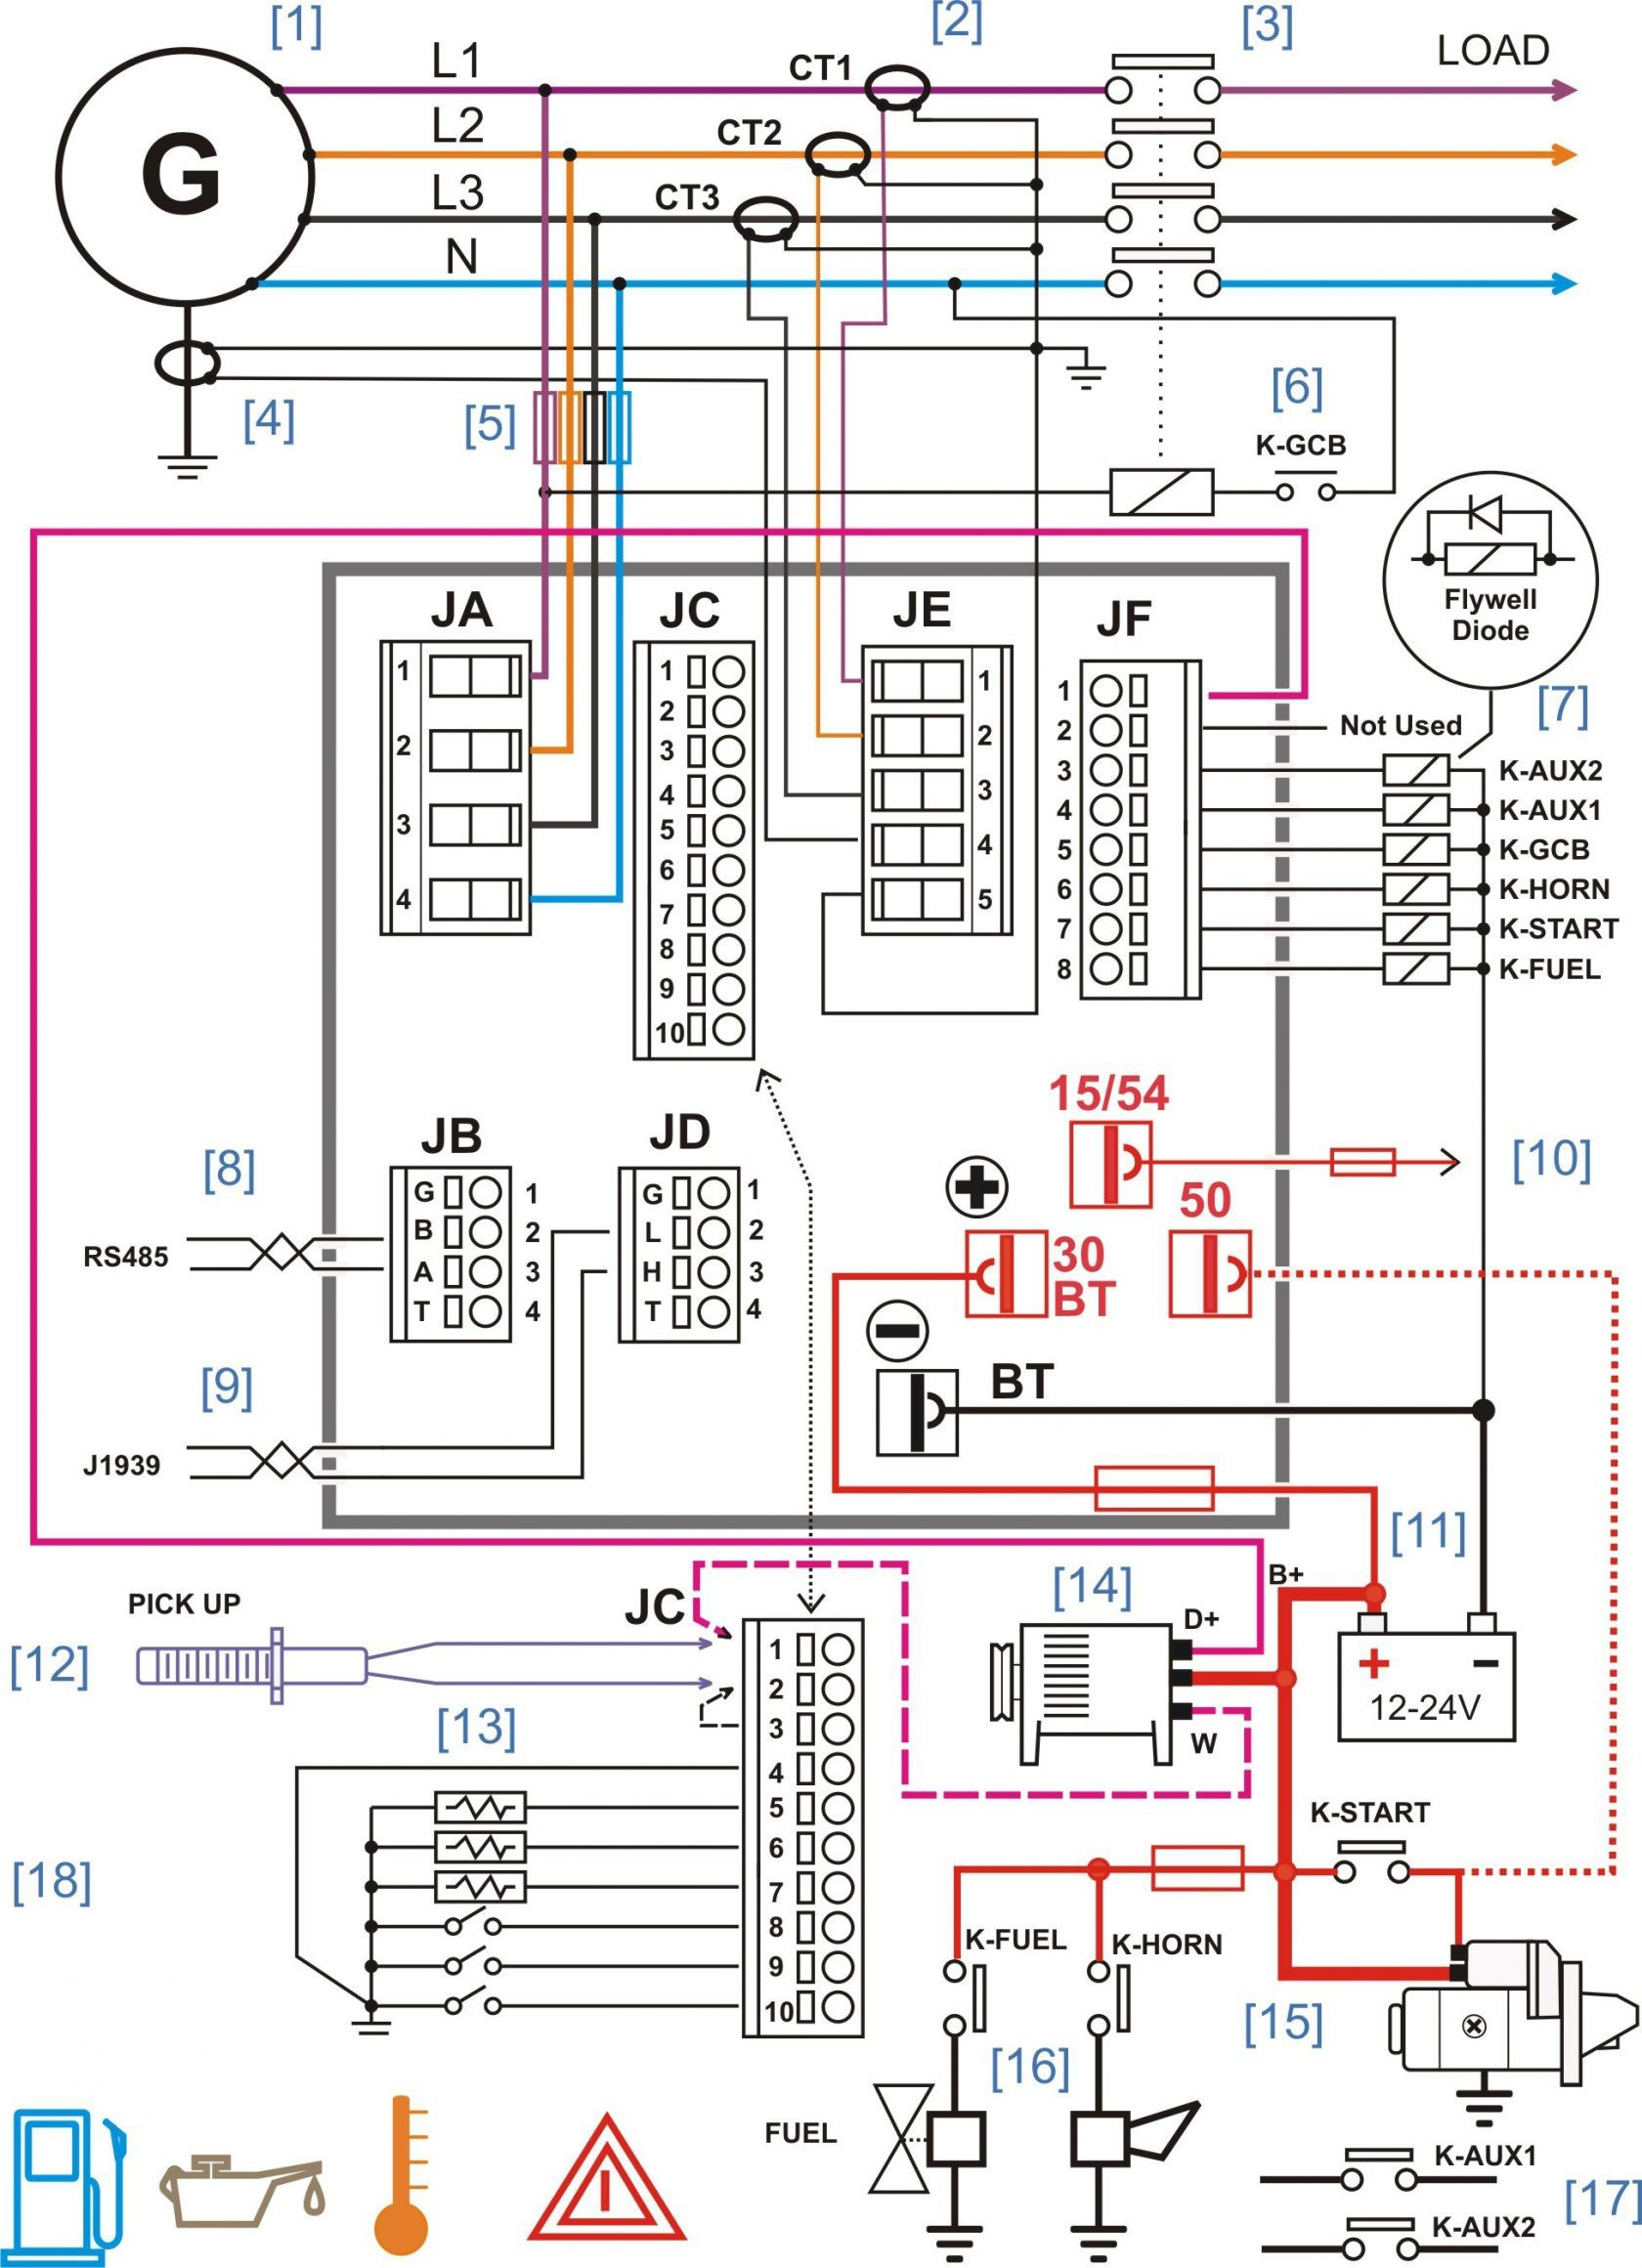 Simple Electrical Wiring Diagrams 1jz Engine Diagram Motor Related Post